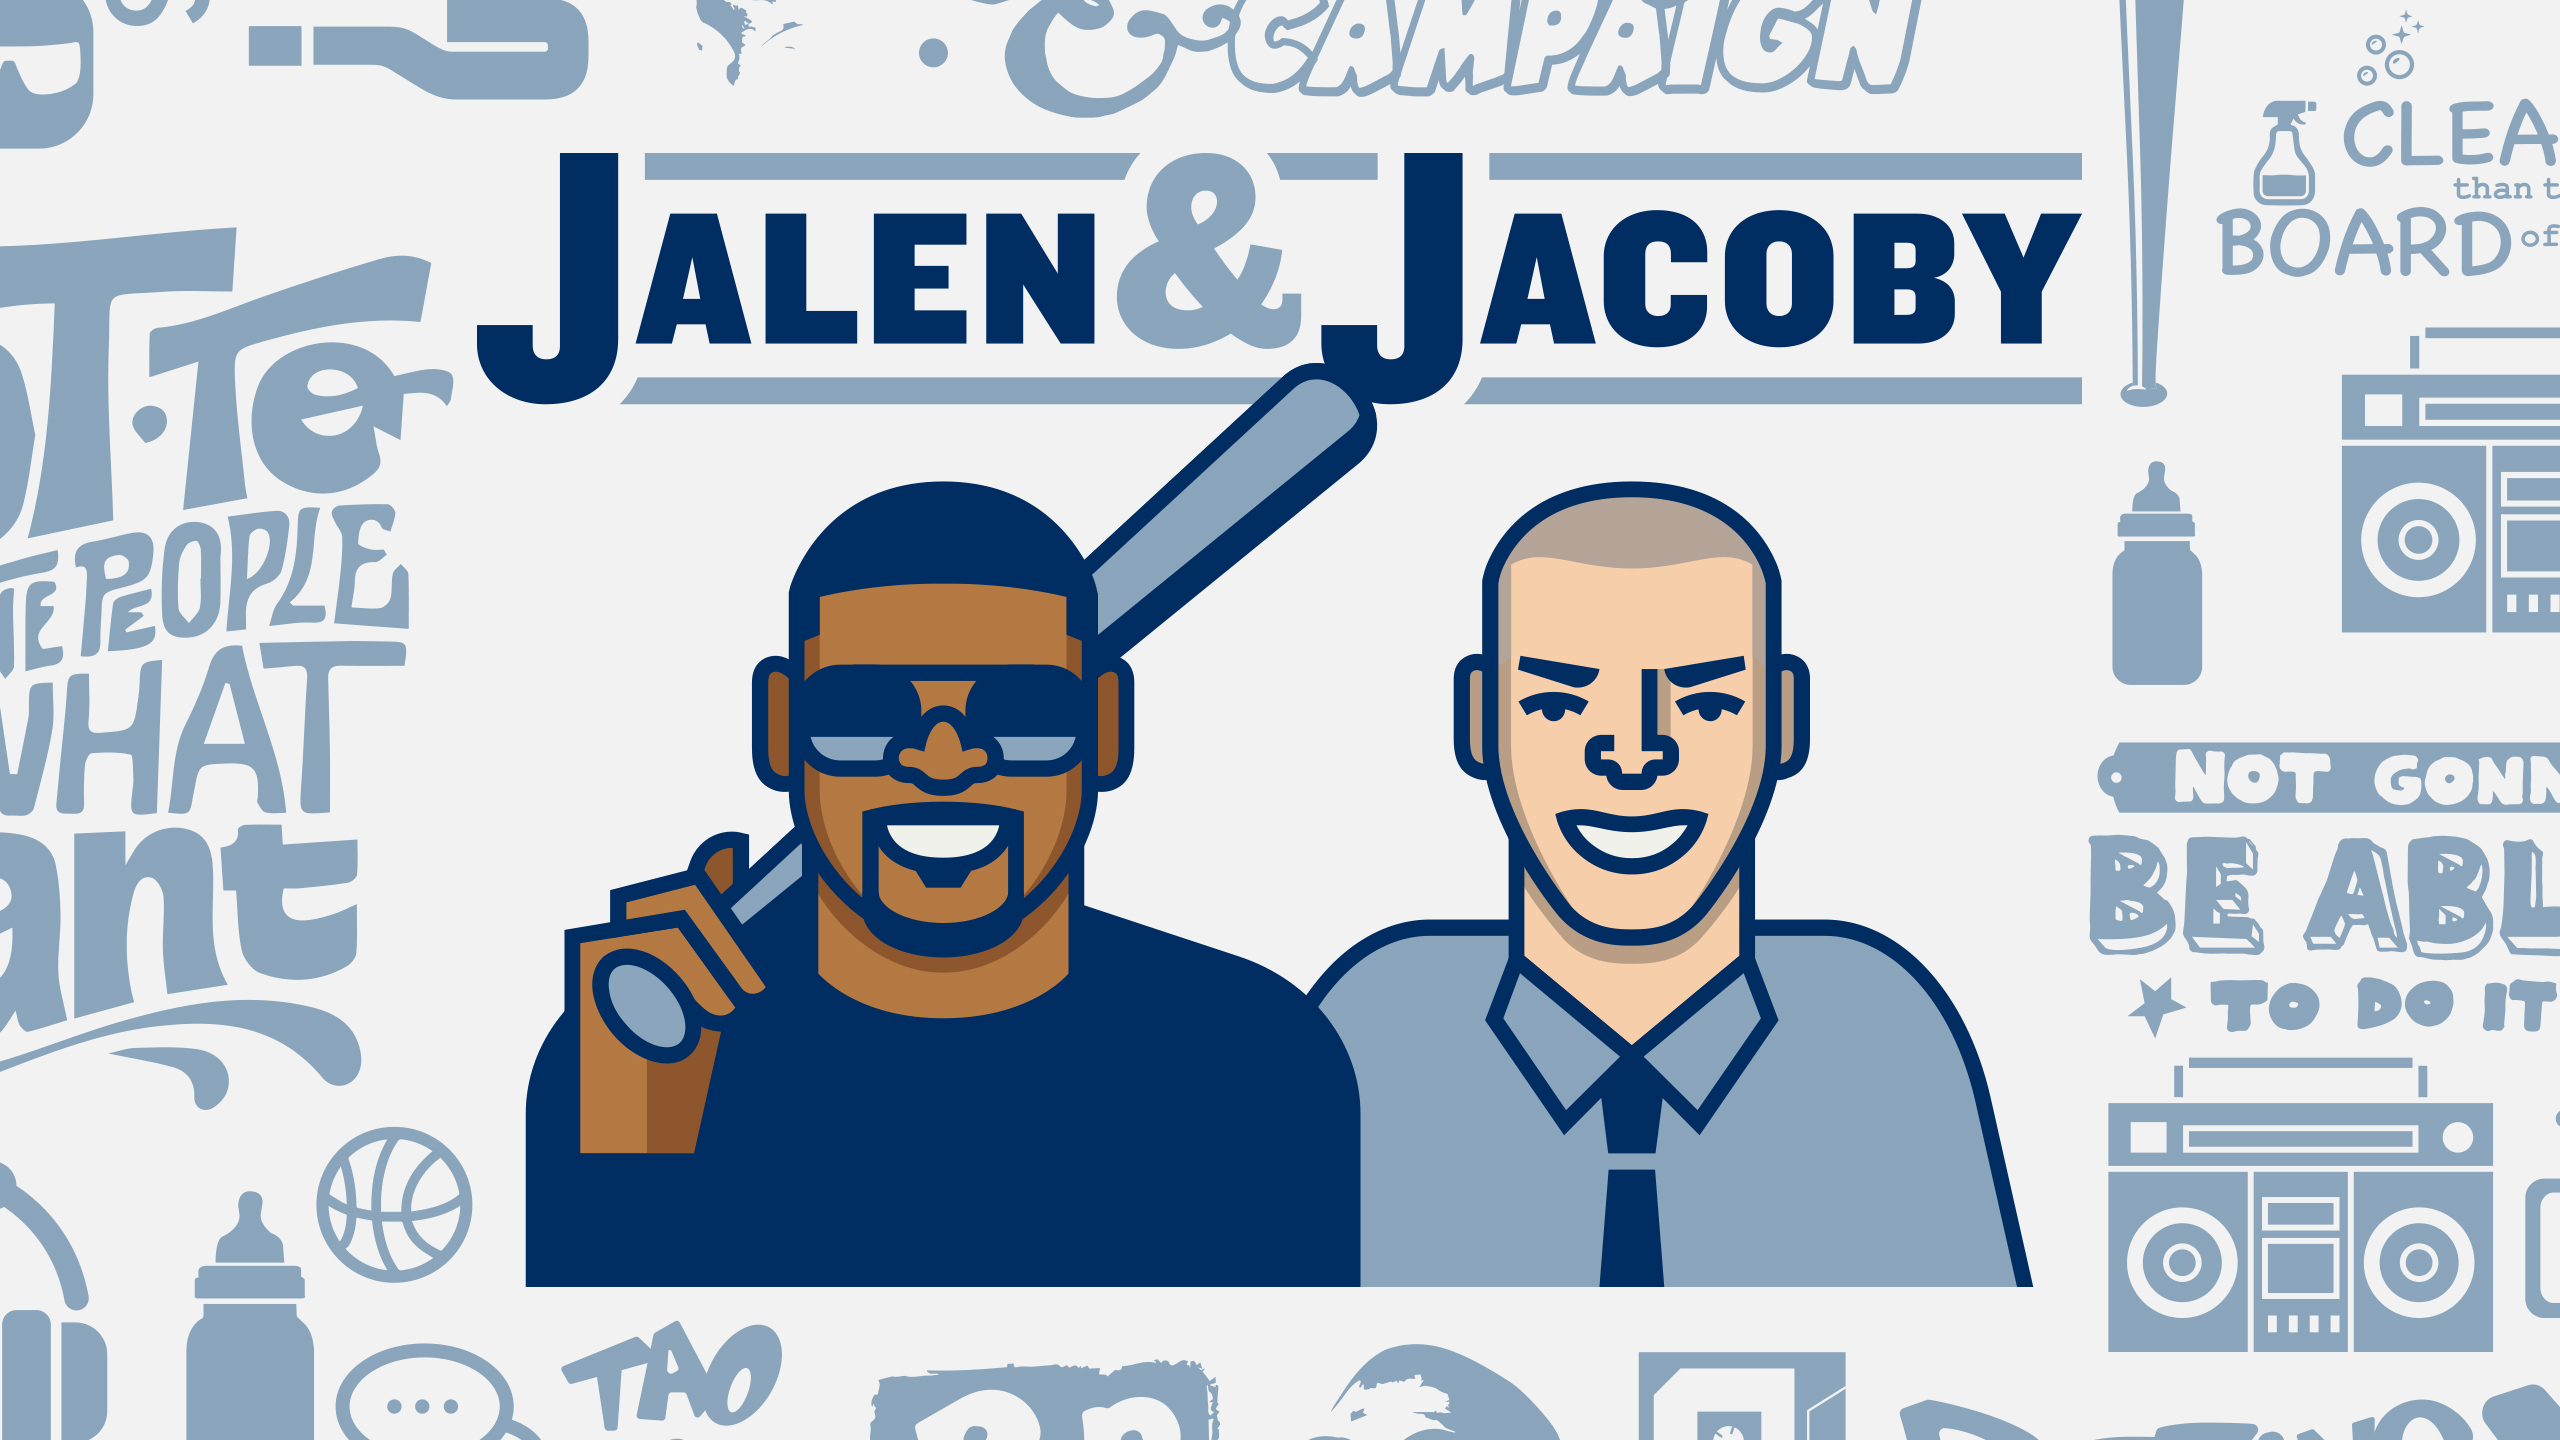 Tue, 10/16 - Jalen & Jacoby